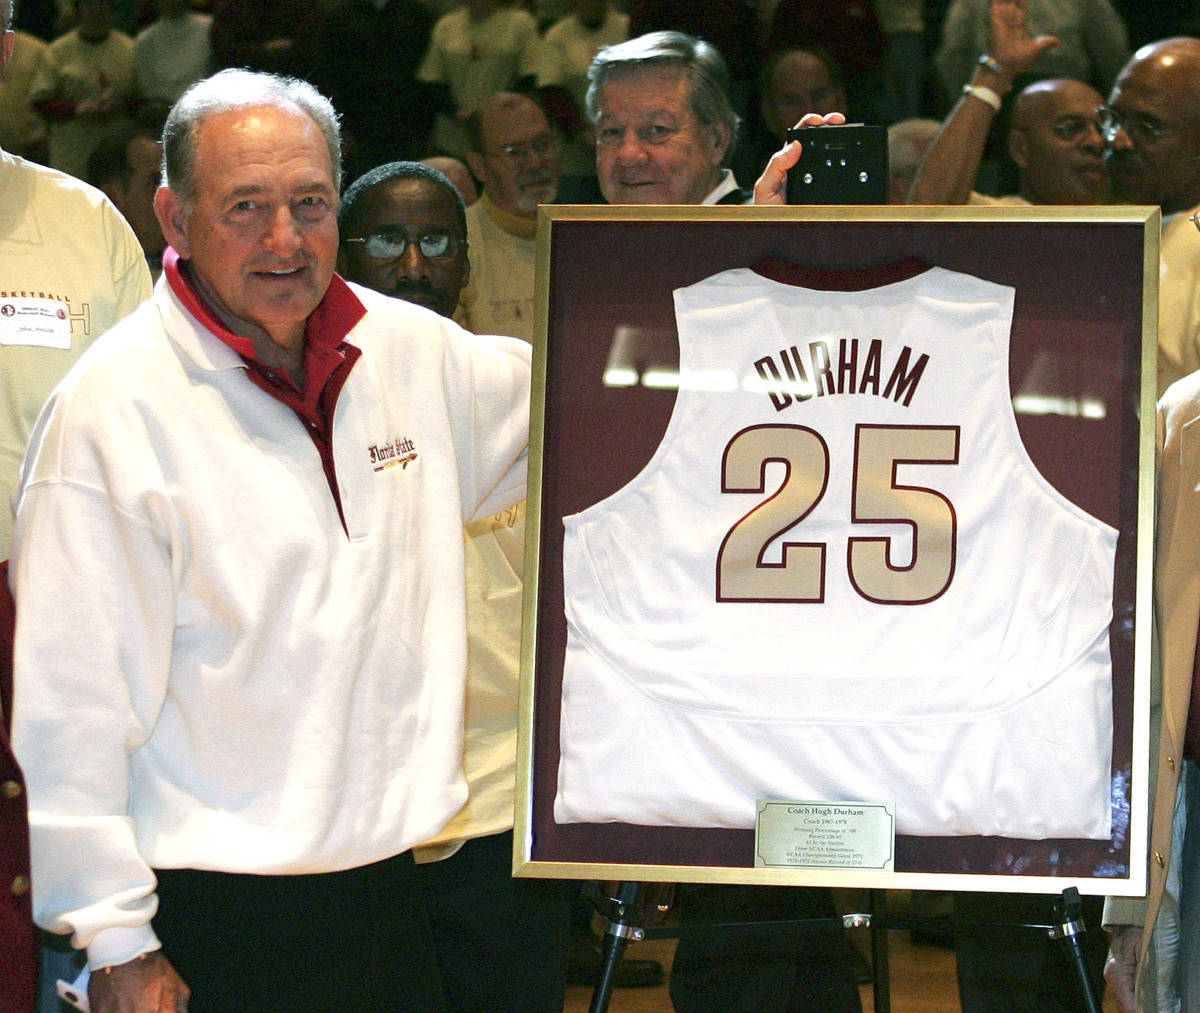 Hugh Durham, left, former head coach and player at Florida State University, left, poses with his retired jersey during half-time ceremonies honoring Durham and the 1972 FSU team during a college basketball game against Miami, Saturday, Jan. 20, 2007, in Tallahassee, Fla. (AP Photo/Brandon Goodman)